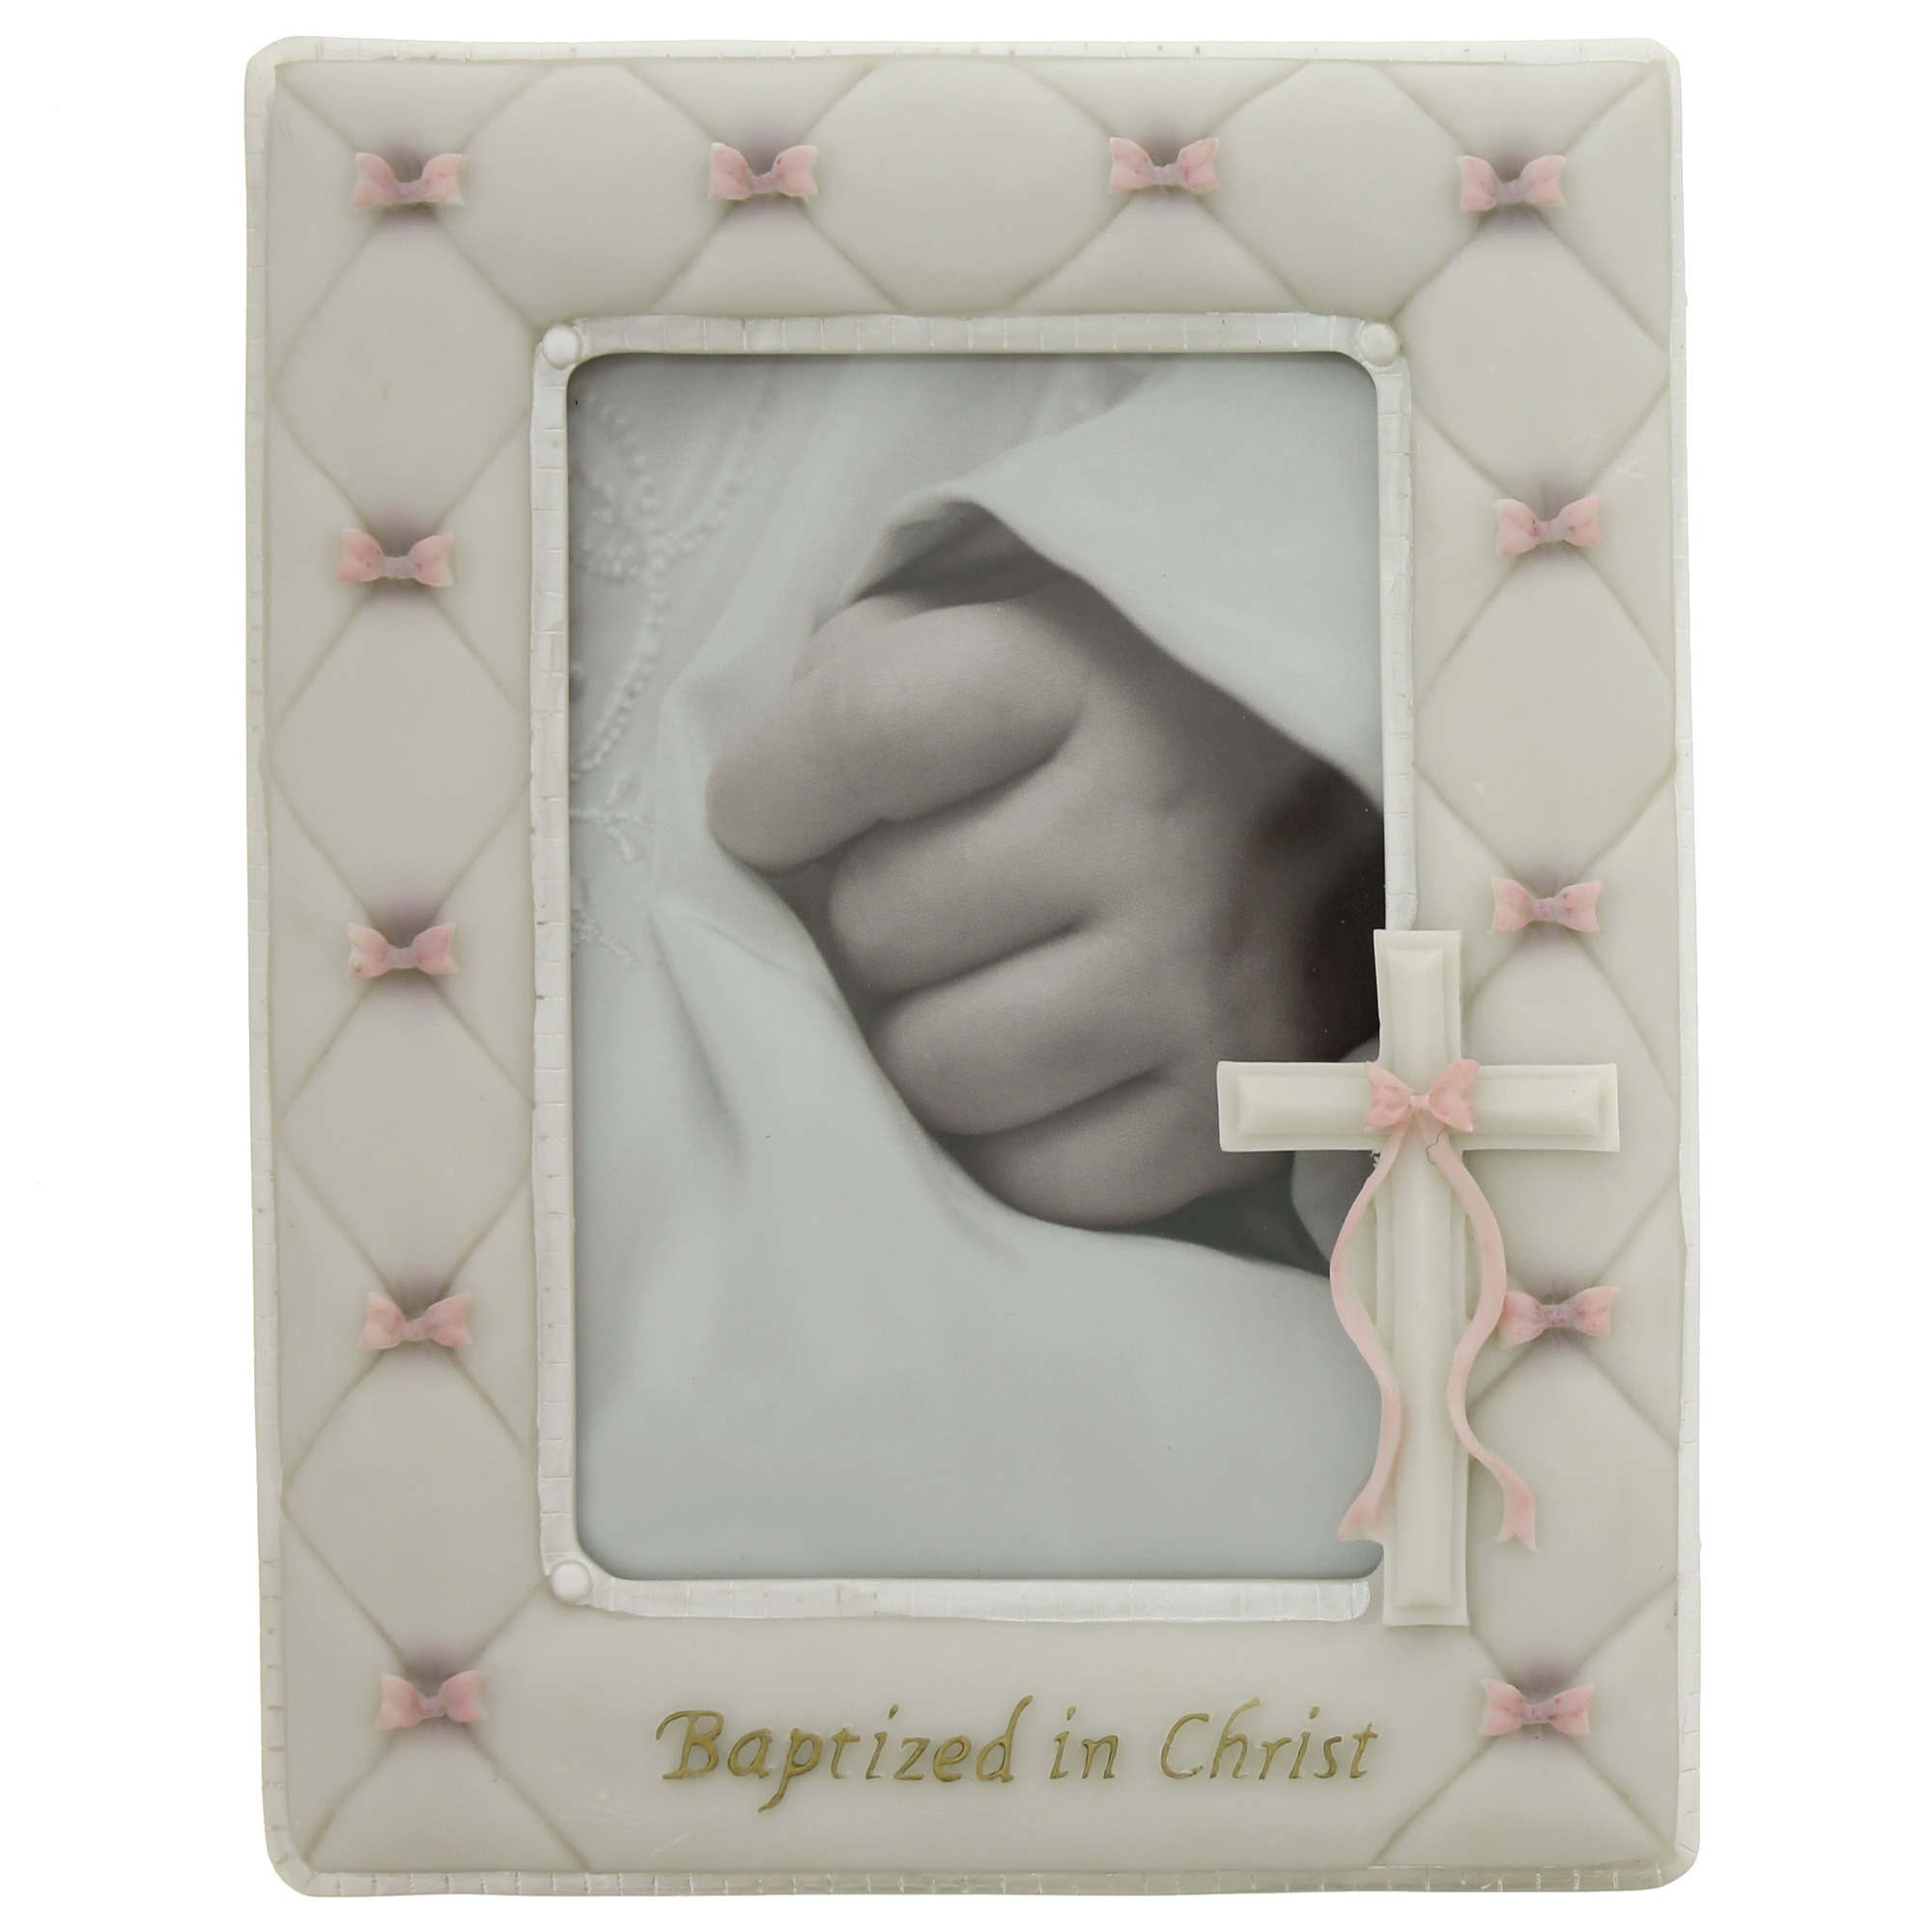 girls baptized in christ photo frame